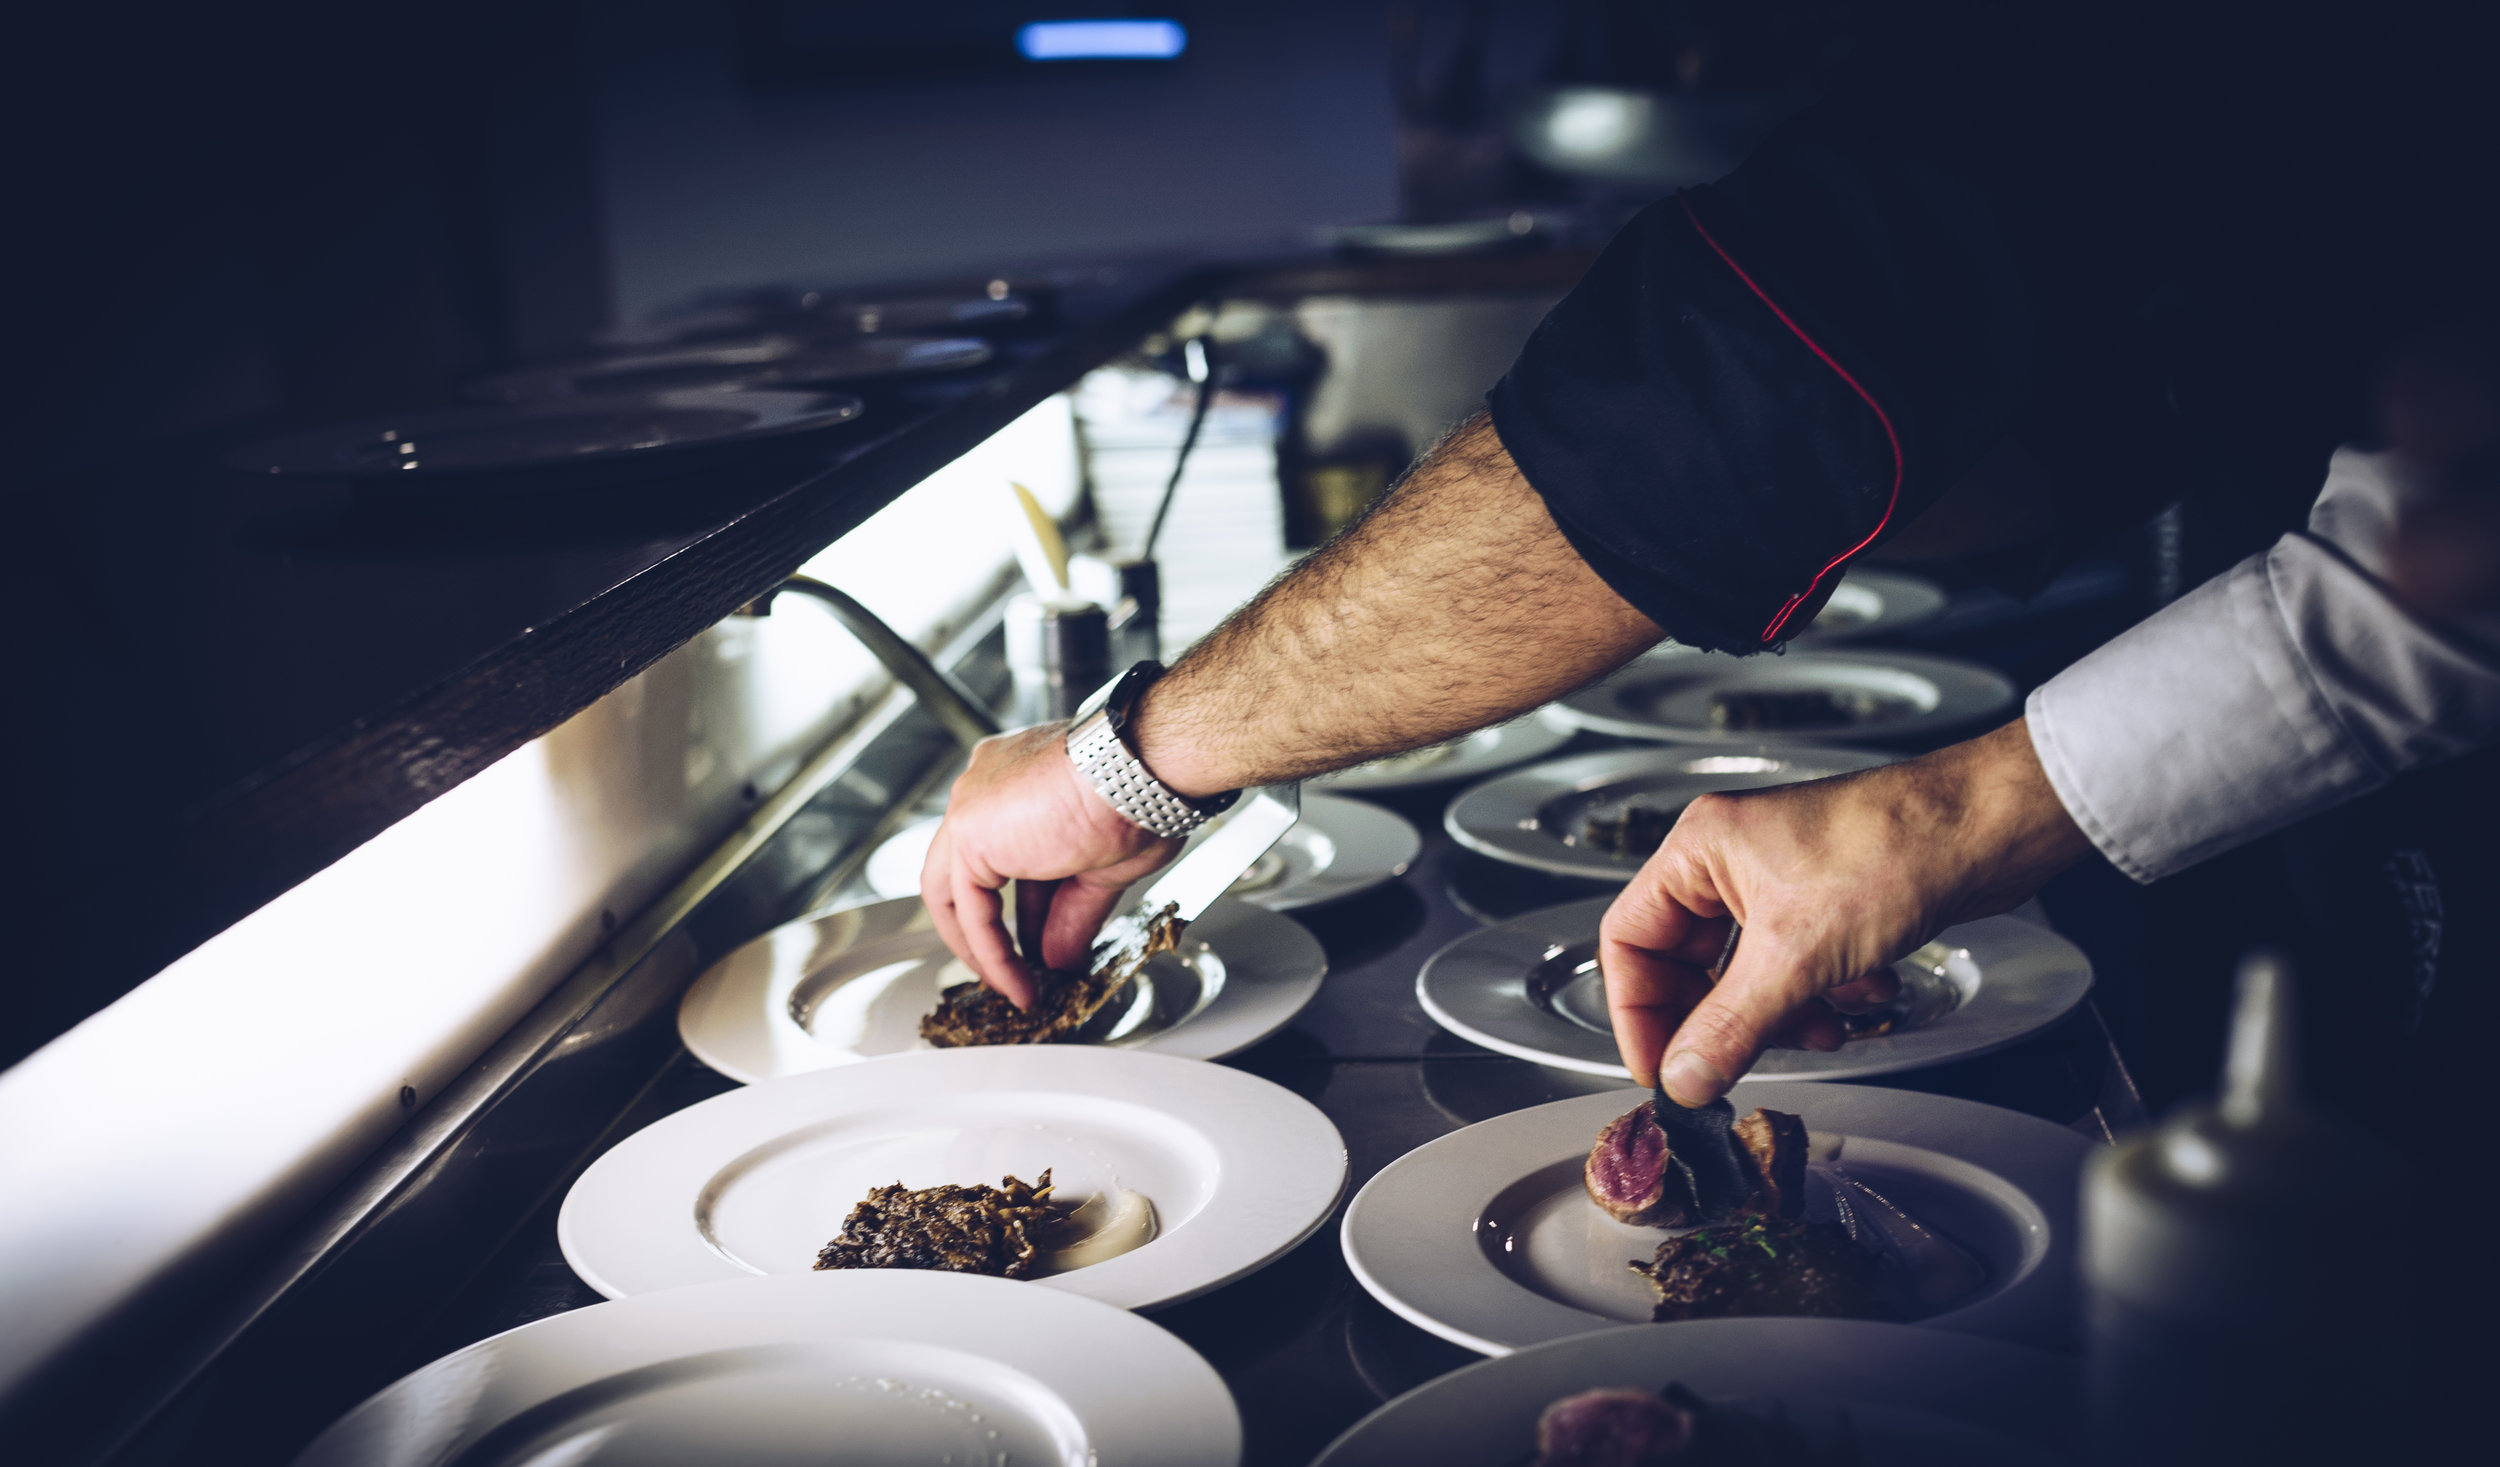 Cooking Classes - CREATE YOUR OWN SCOTTSDALE CULINARY JOURNEY & LEARNING EXPERIENCE AT AN EXCLUSIVE CLASSTurn your next dinner into an event and sharpen those cooking skills during this interactive culinary experience.